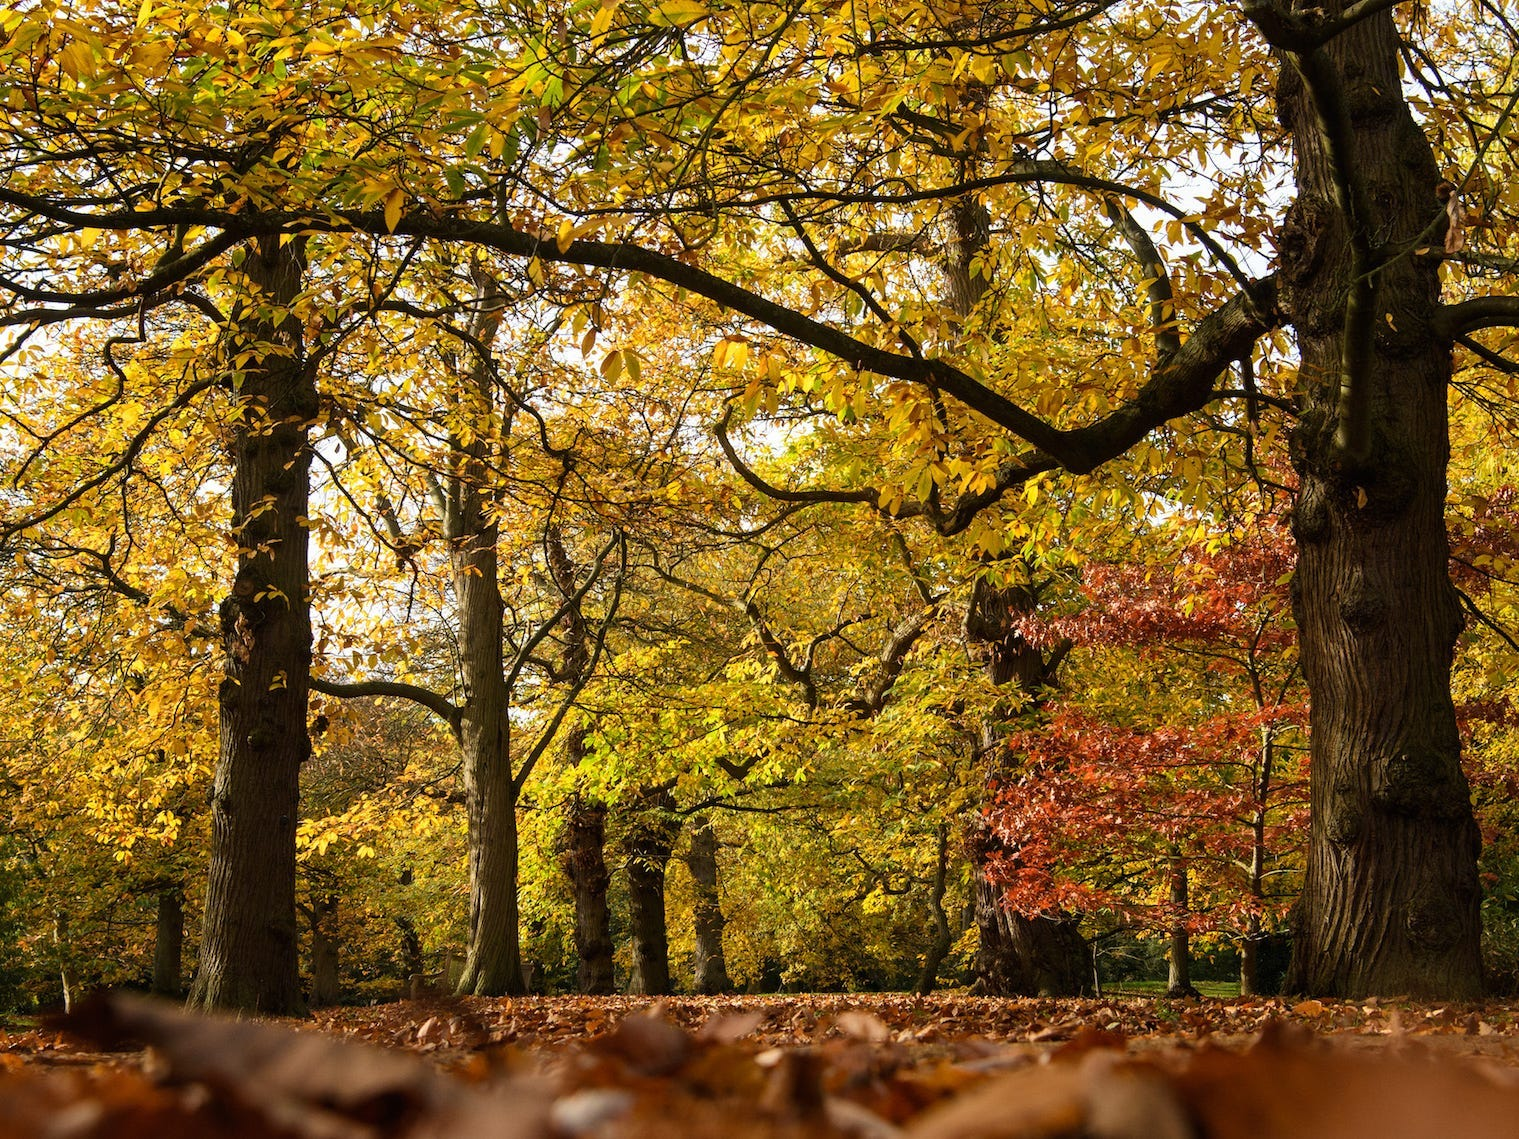 Slide 1 of 17:  Fall is a great time to travel if you're after gorgeous views of changing leaves or fun destinations with smaller crowds.  There are plenty of great autumn destinations across the US, including Tarrytown, NY, Salt Lake City, UT, and Door County, WI. If you're interested in attending fall-themed festivals and events, head to the Kentucky Triangle, Orlando, Florida, or Salem, Massachusetts.  Visit Insider's homepage for more stories. Fall is one of the most beautiful times of the year. Temperatures are cooling down, the foliage is gorgeous, and the summer crowds have usually dispersed. That's exactly why the autumn months are the perfect time to do a little bit of traveling to a spot that allows you to take full advantage of the natural beauty. Read on for a few places across the US that are perfect for a fall getaway.Read the original article on Insider